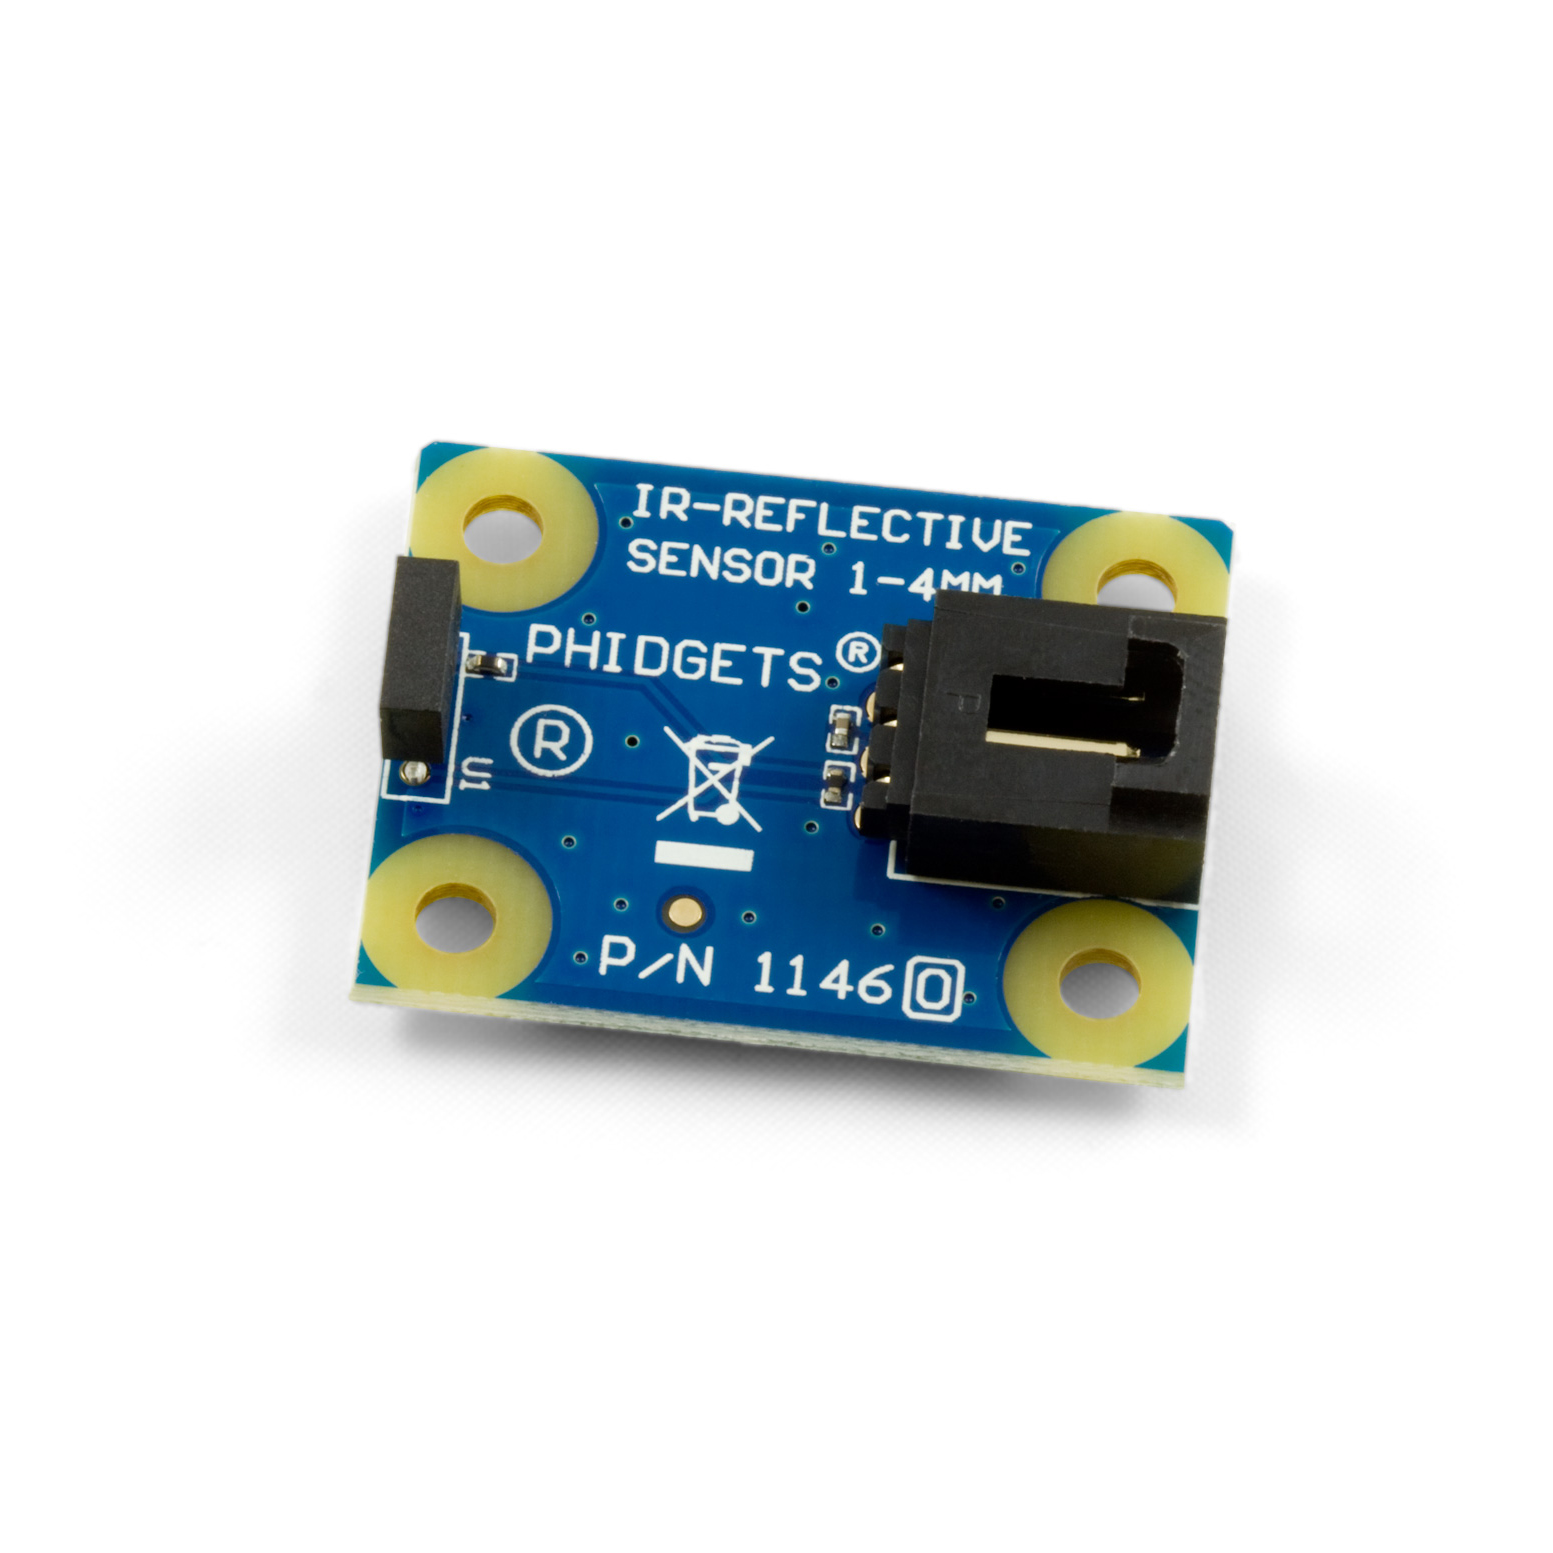 IR Reflective Sensor 1-4mm